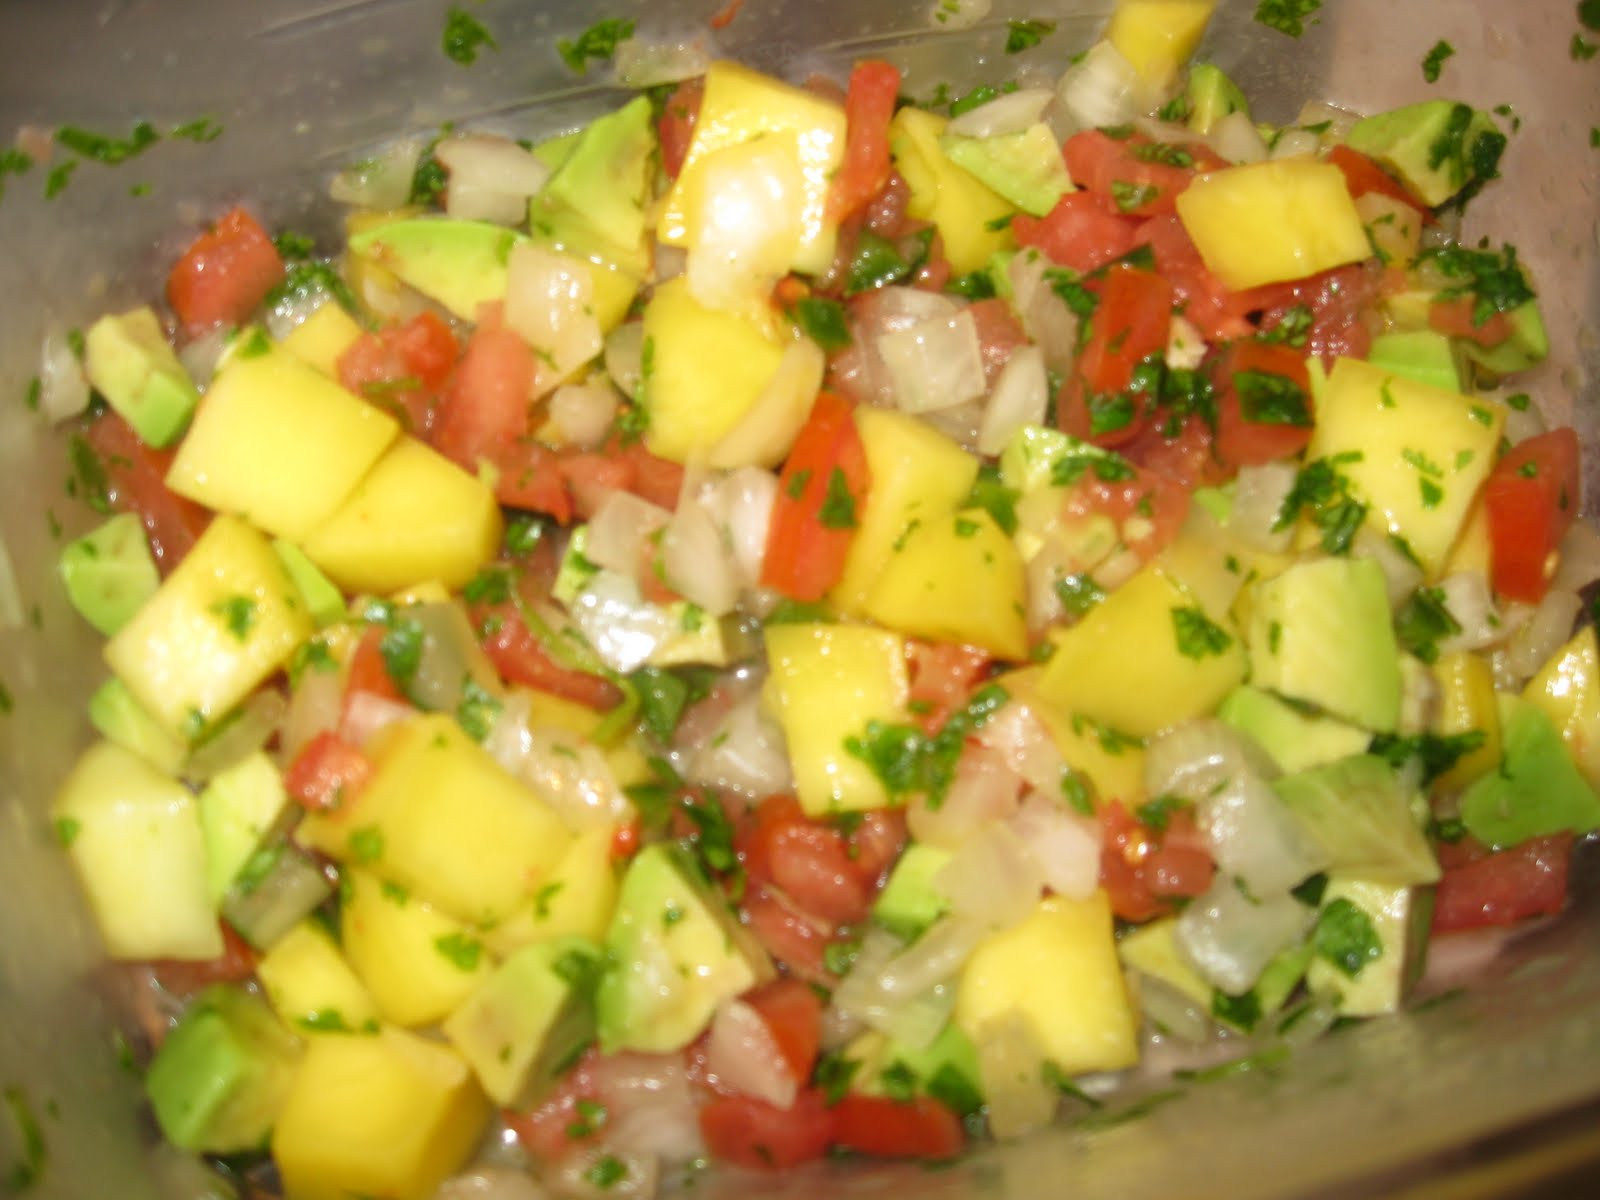 Nana's Recipe Box: Chicken Tacos with Mango-Avocado Salsa